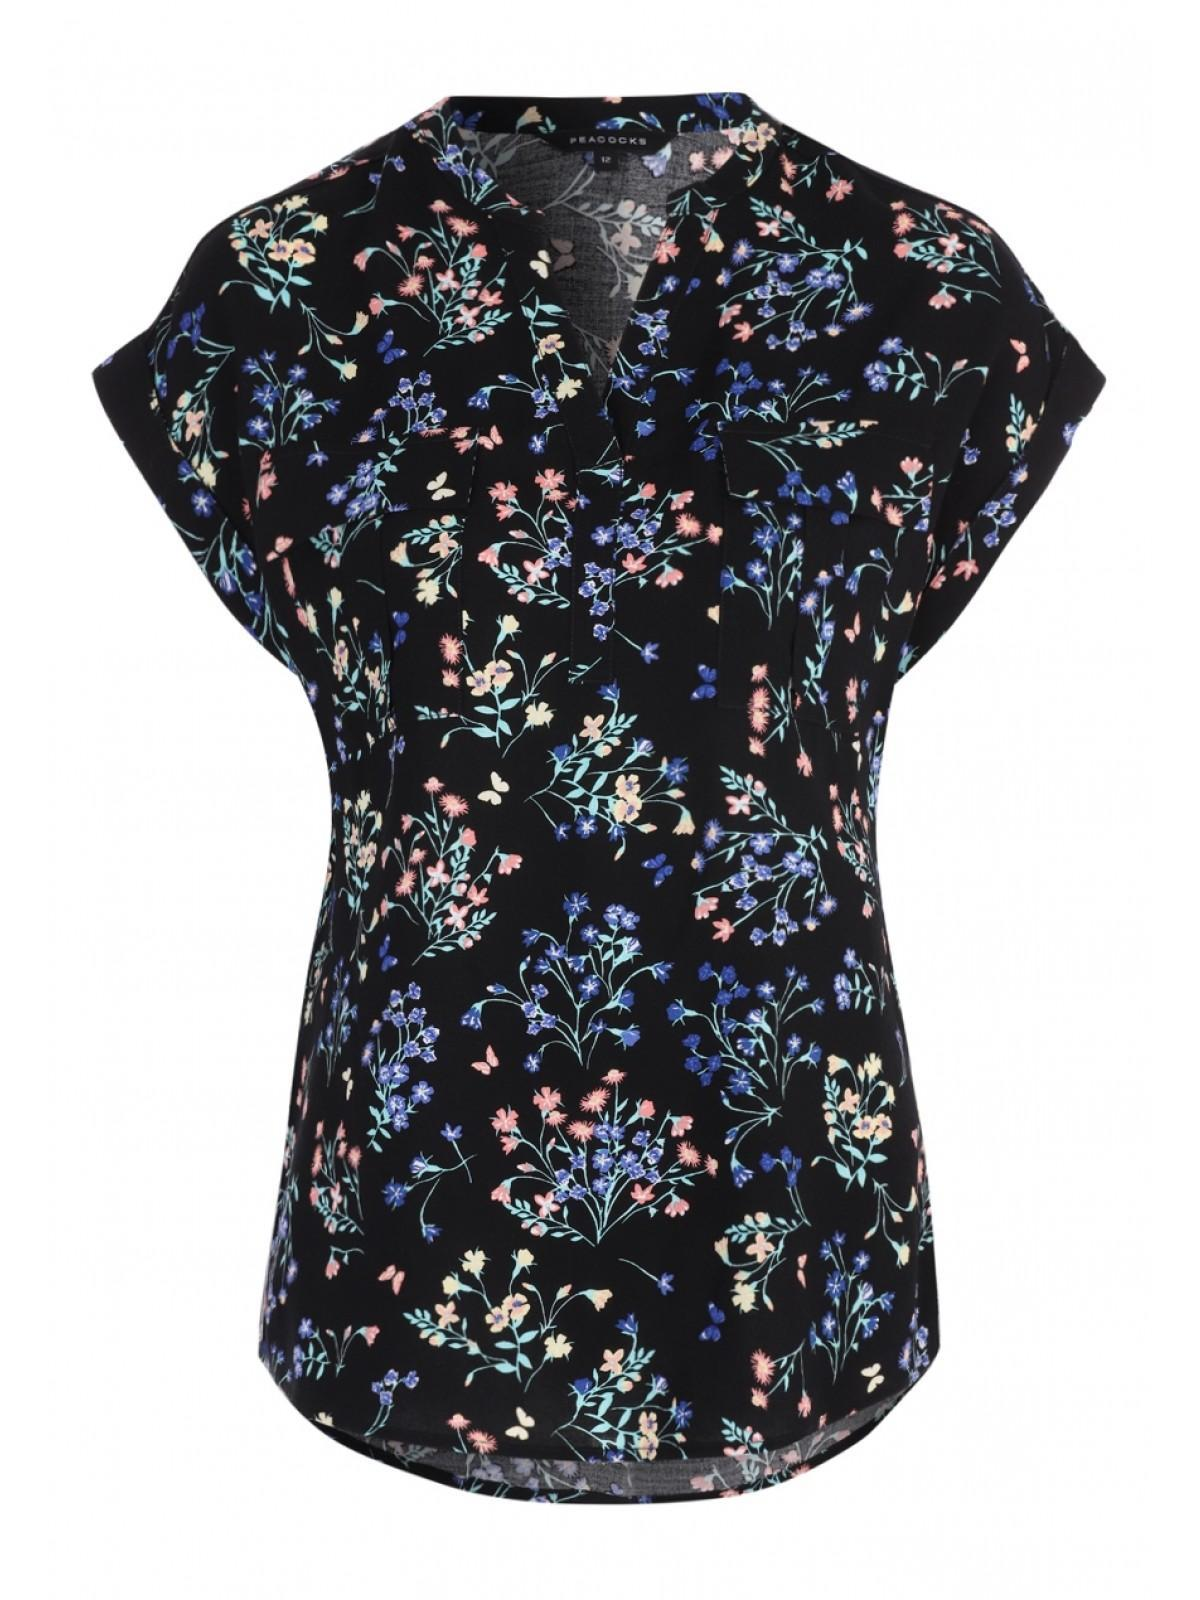 1592261b9c994d Home; Womens Black Floral Butterfly Short Sleeve Blouse. Back. PreviousNext